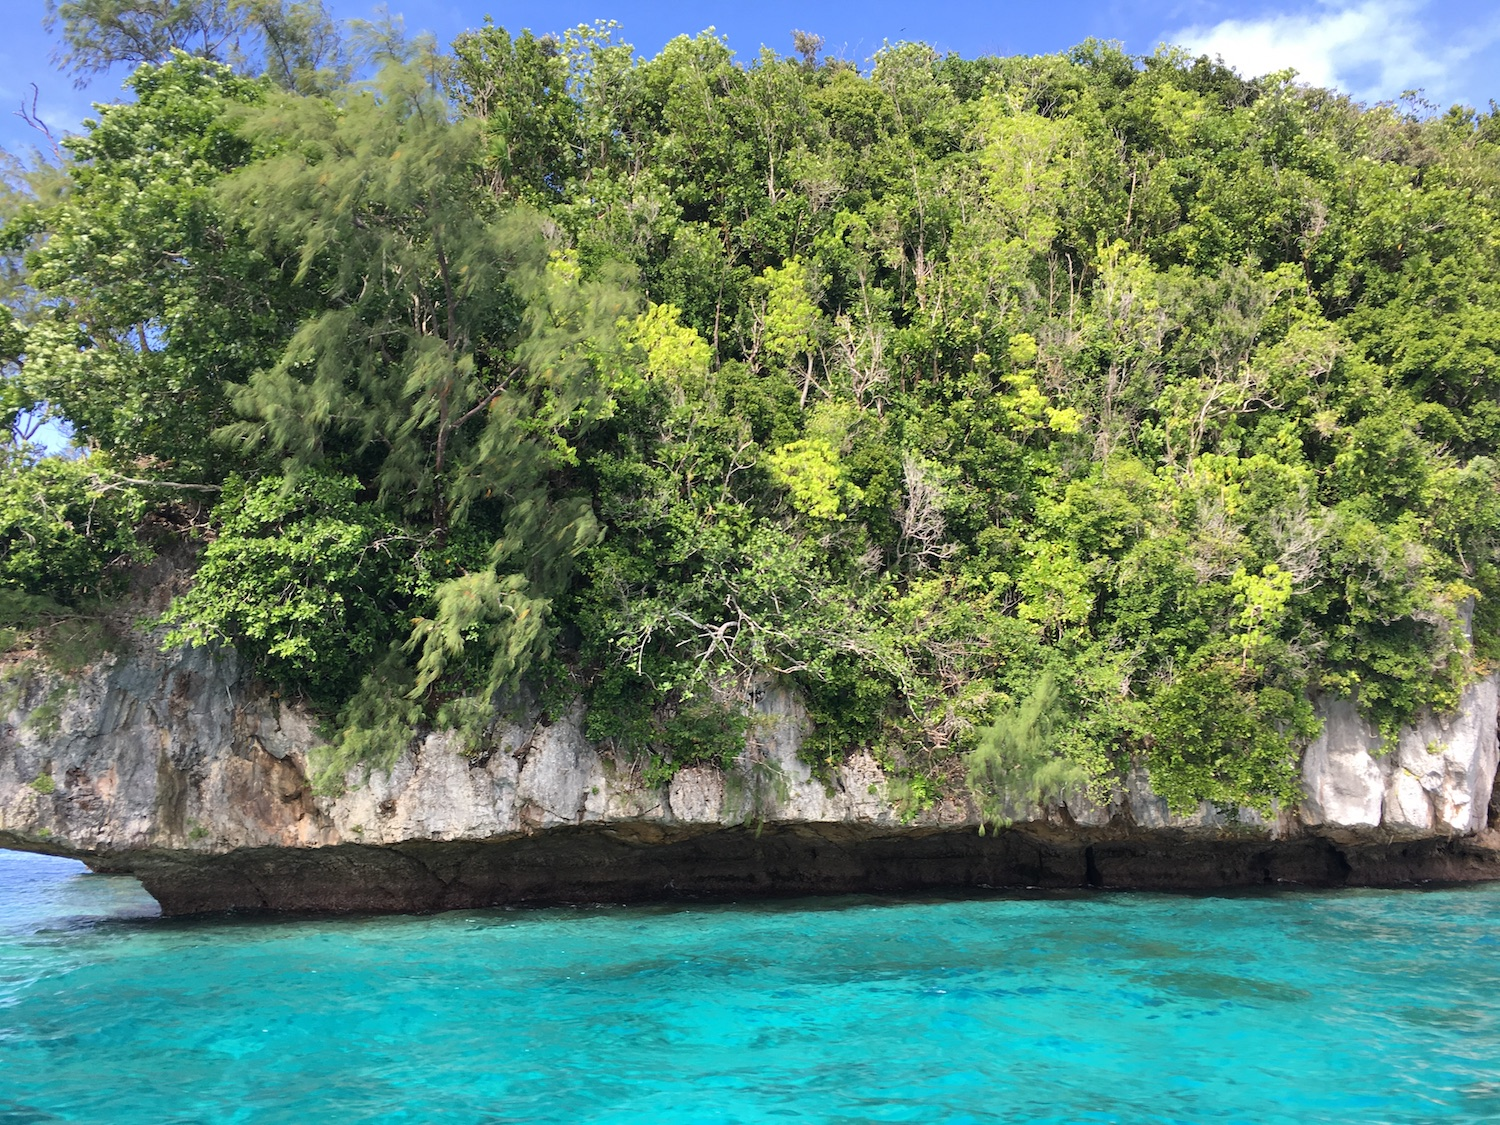 Close up of a Rock Island in Palau